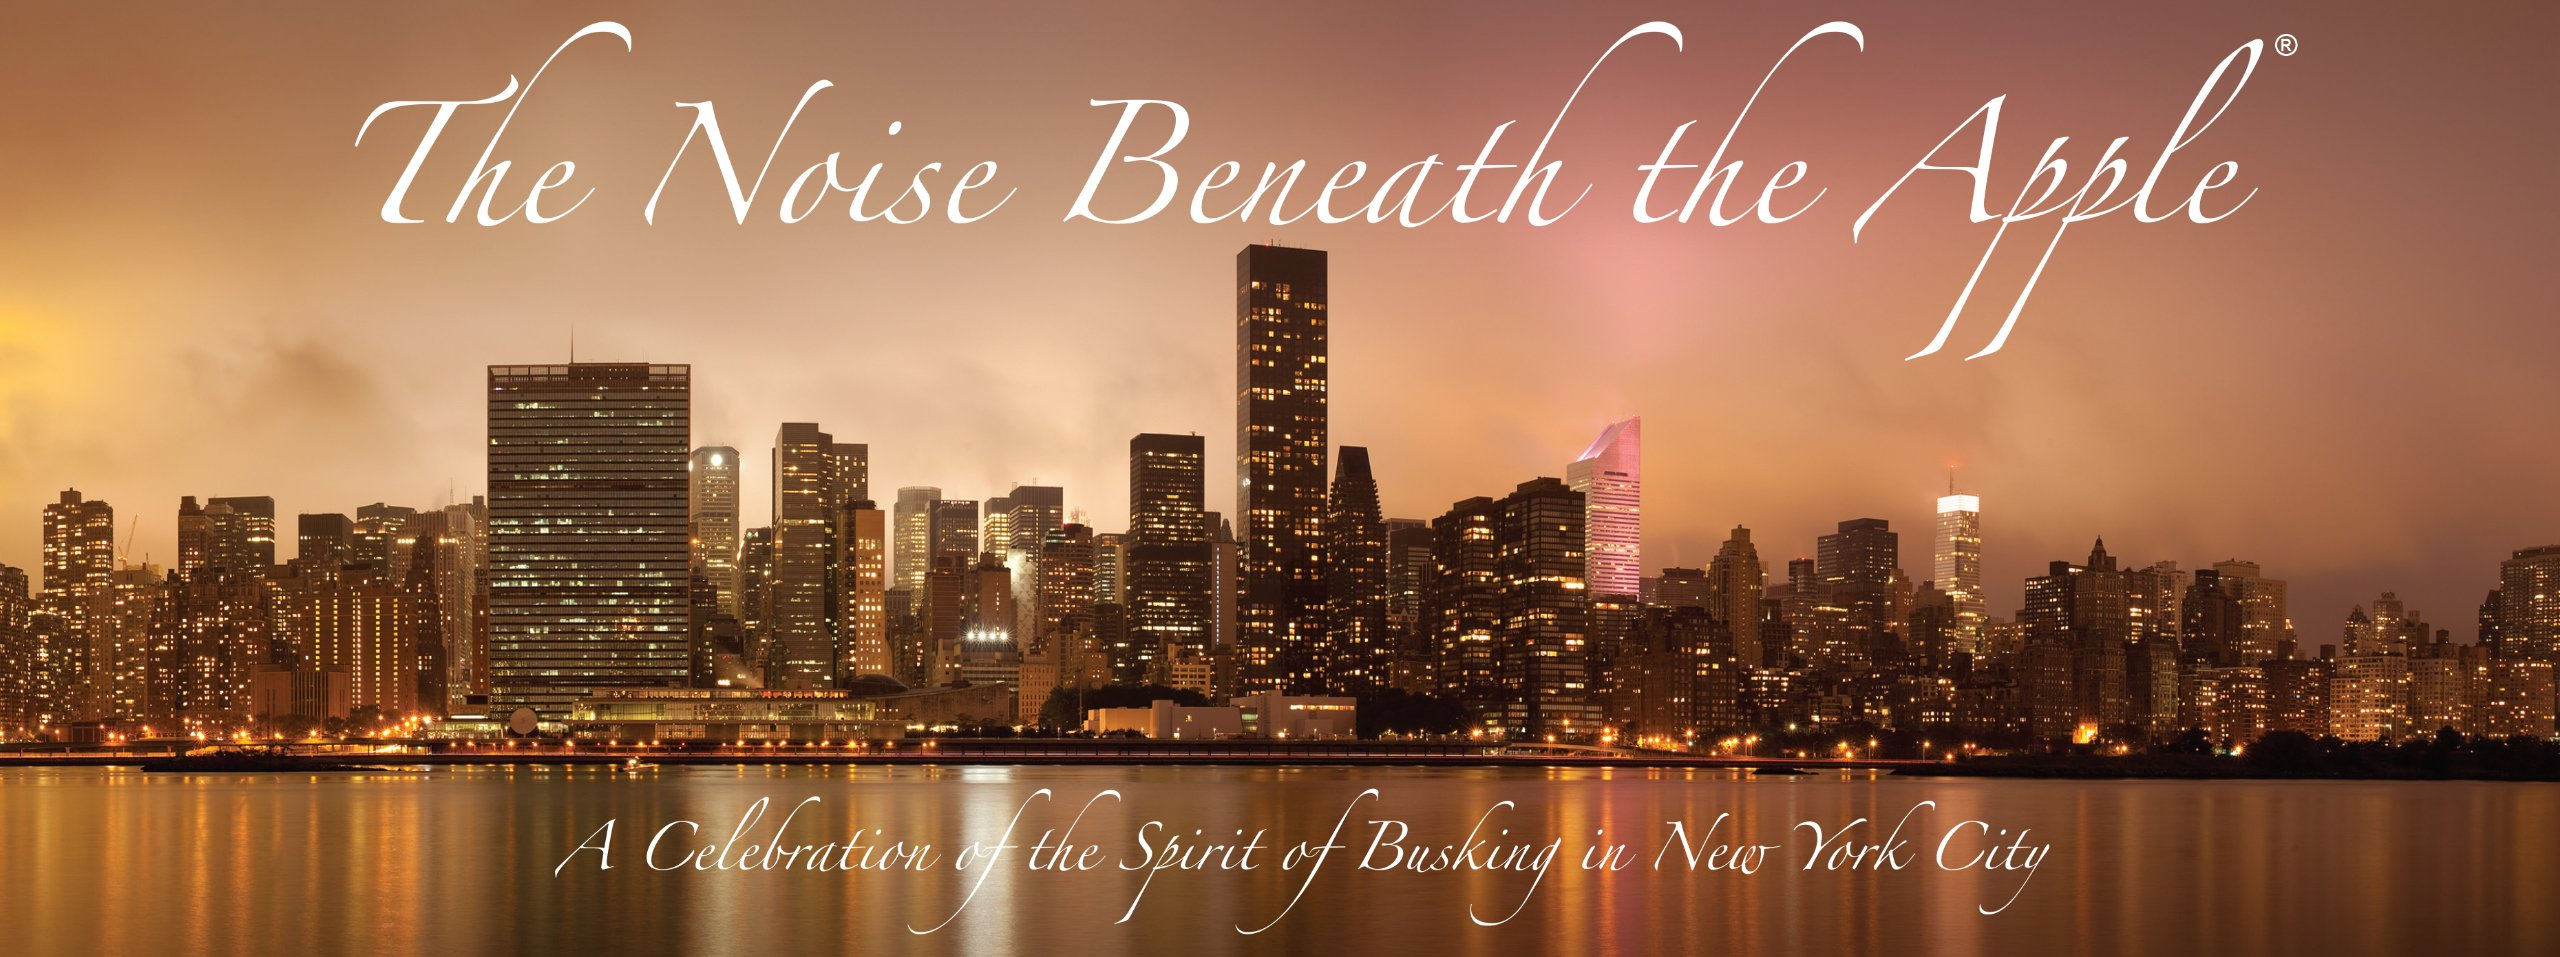 Download The Noise Beneath the Apple; A Celebration of Busking in New York City (The Noise Beneath the Apple; A Celebration of Busking in New York City) PDF